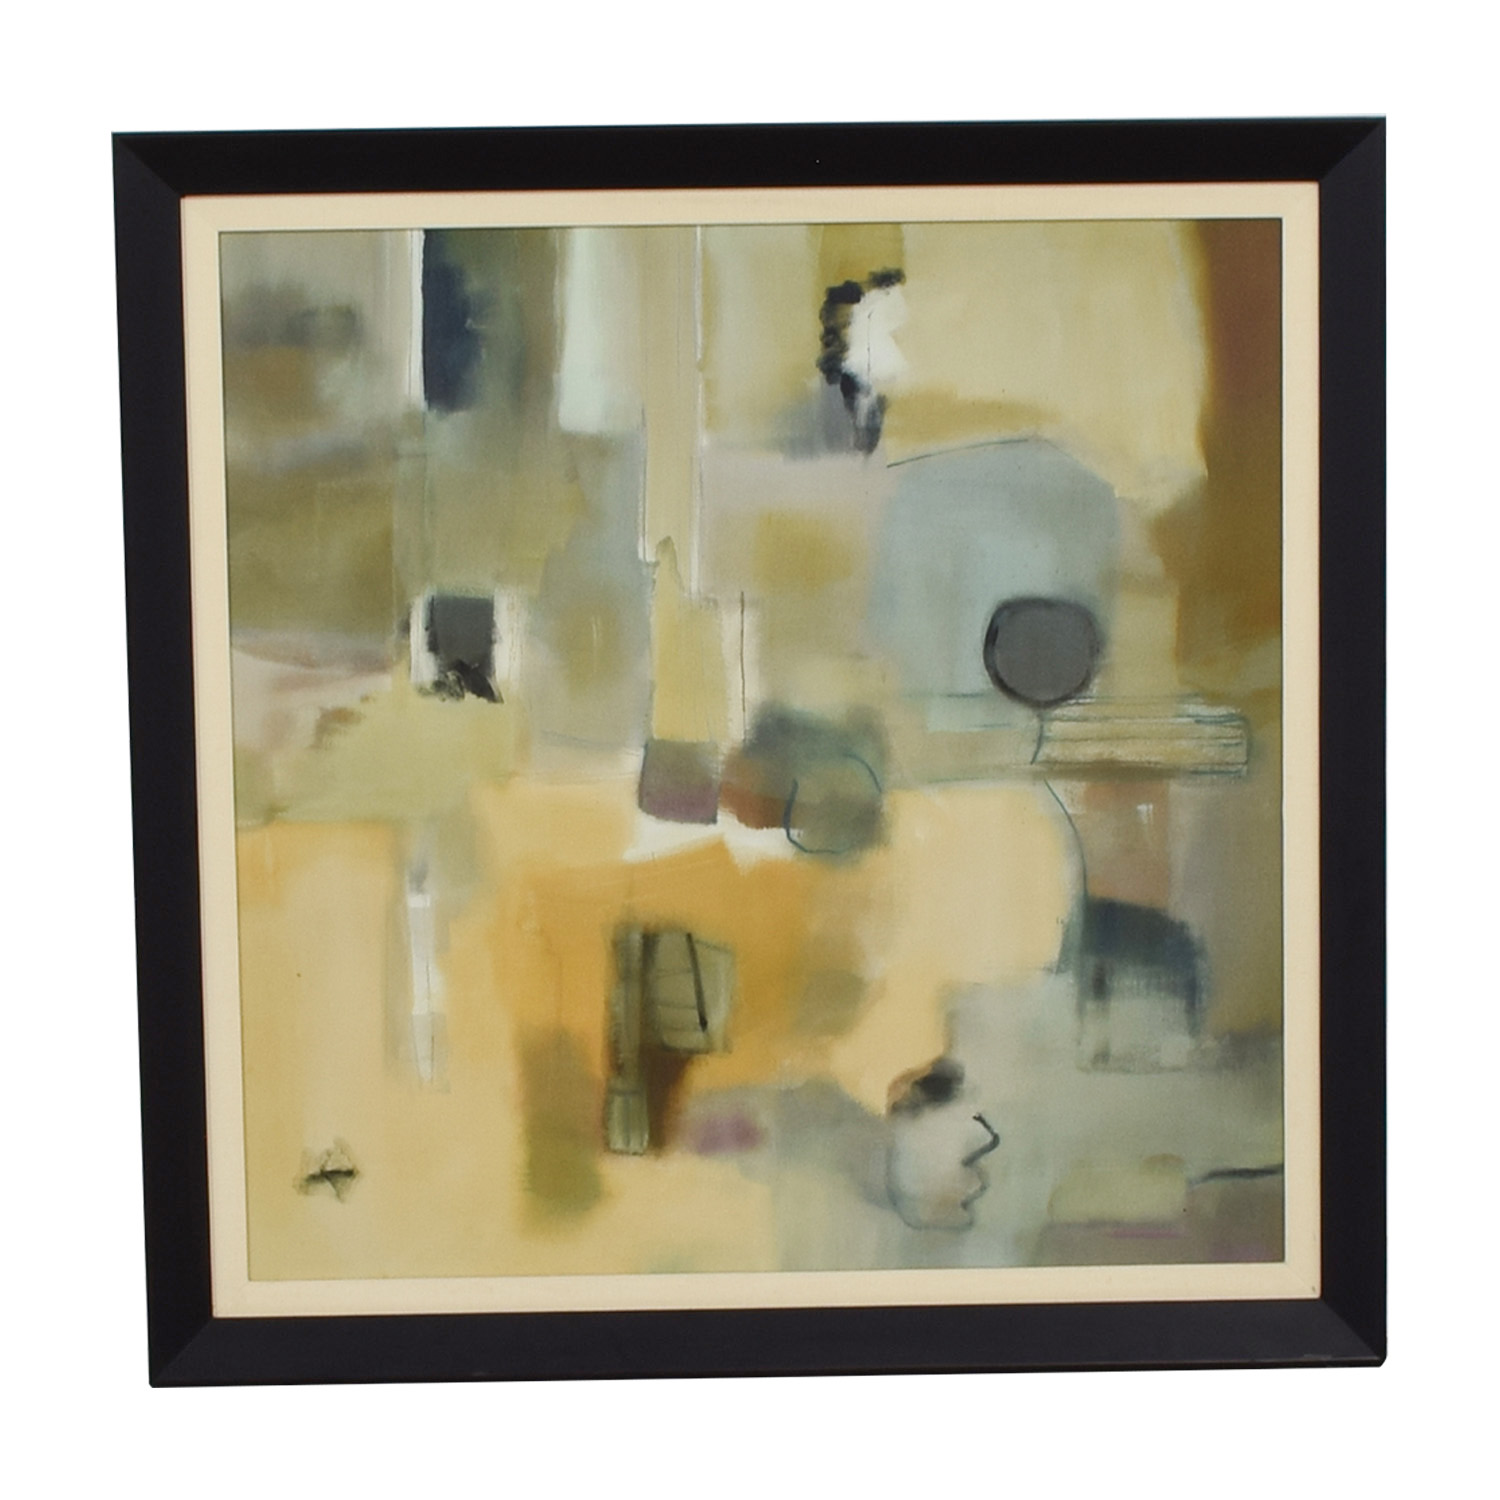 The Bombay Company The Bombay Company Framed Art Nancy Ortenstone Music of the Moment nyc